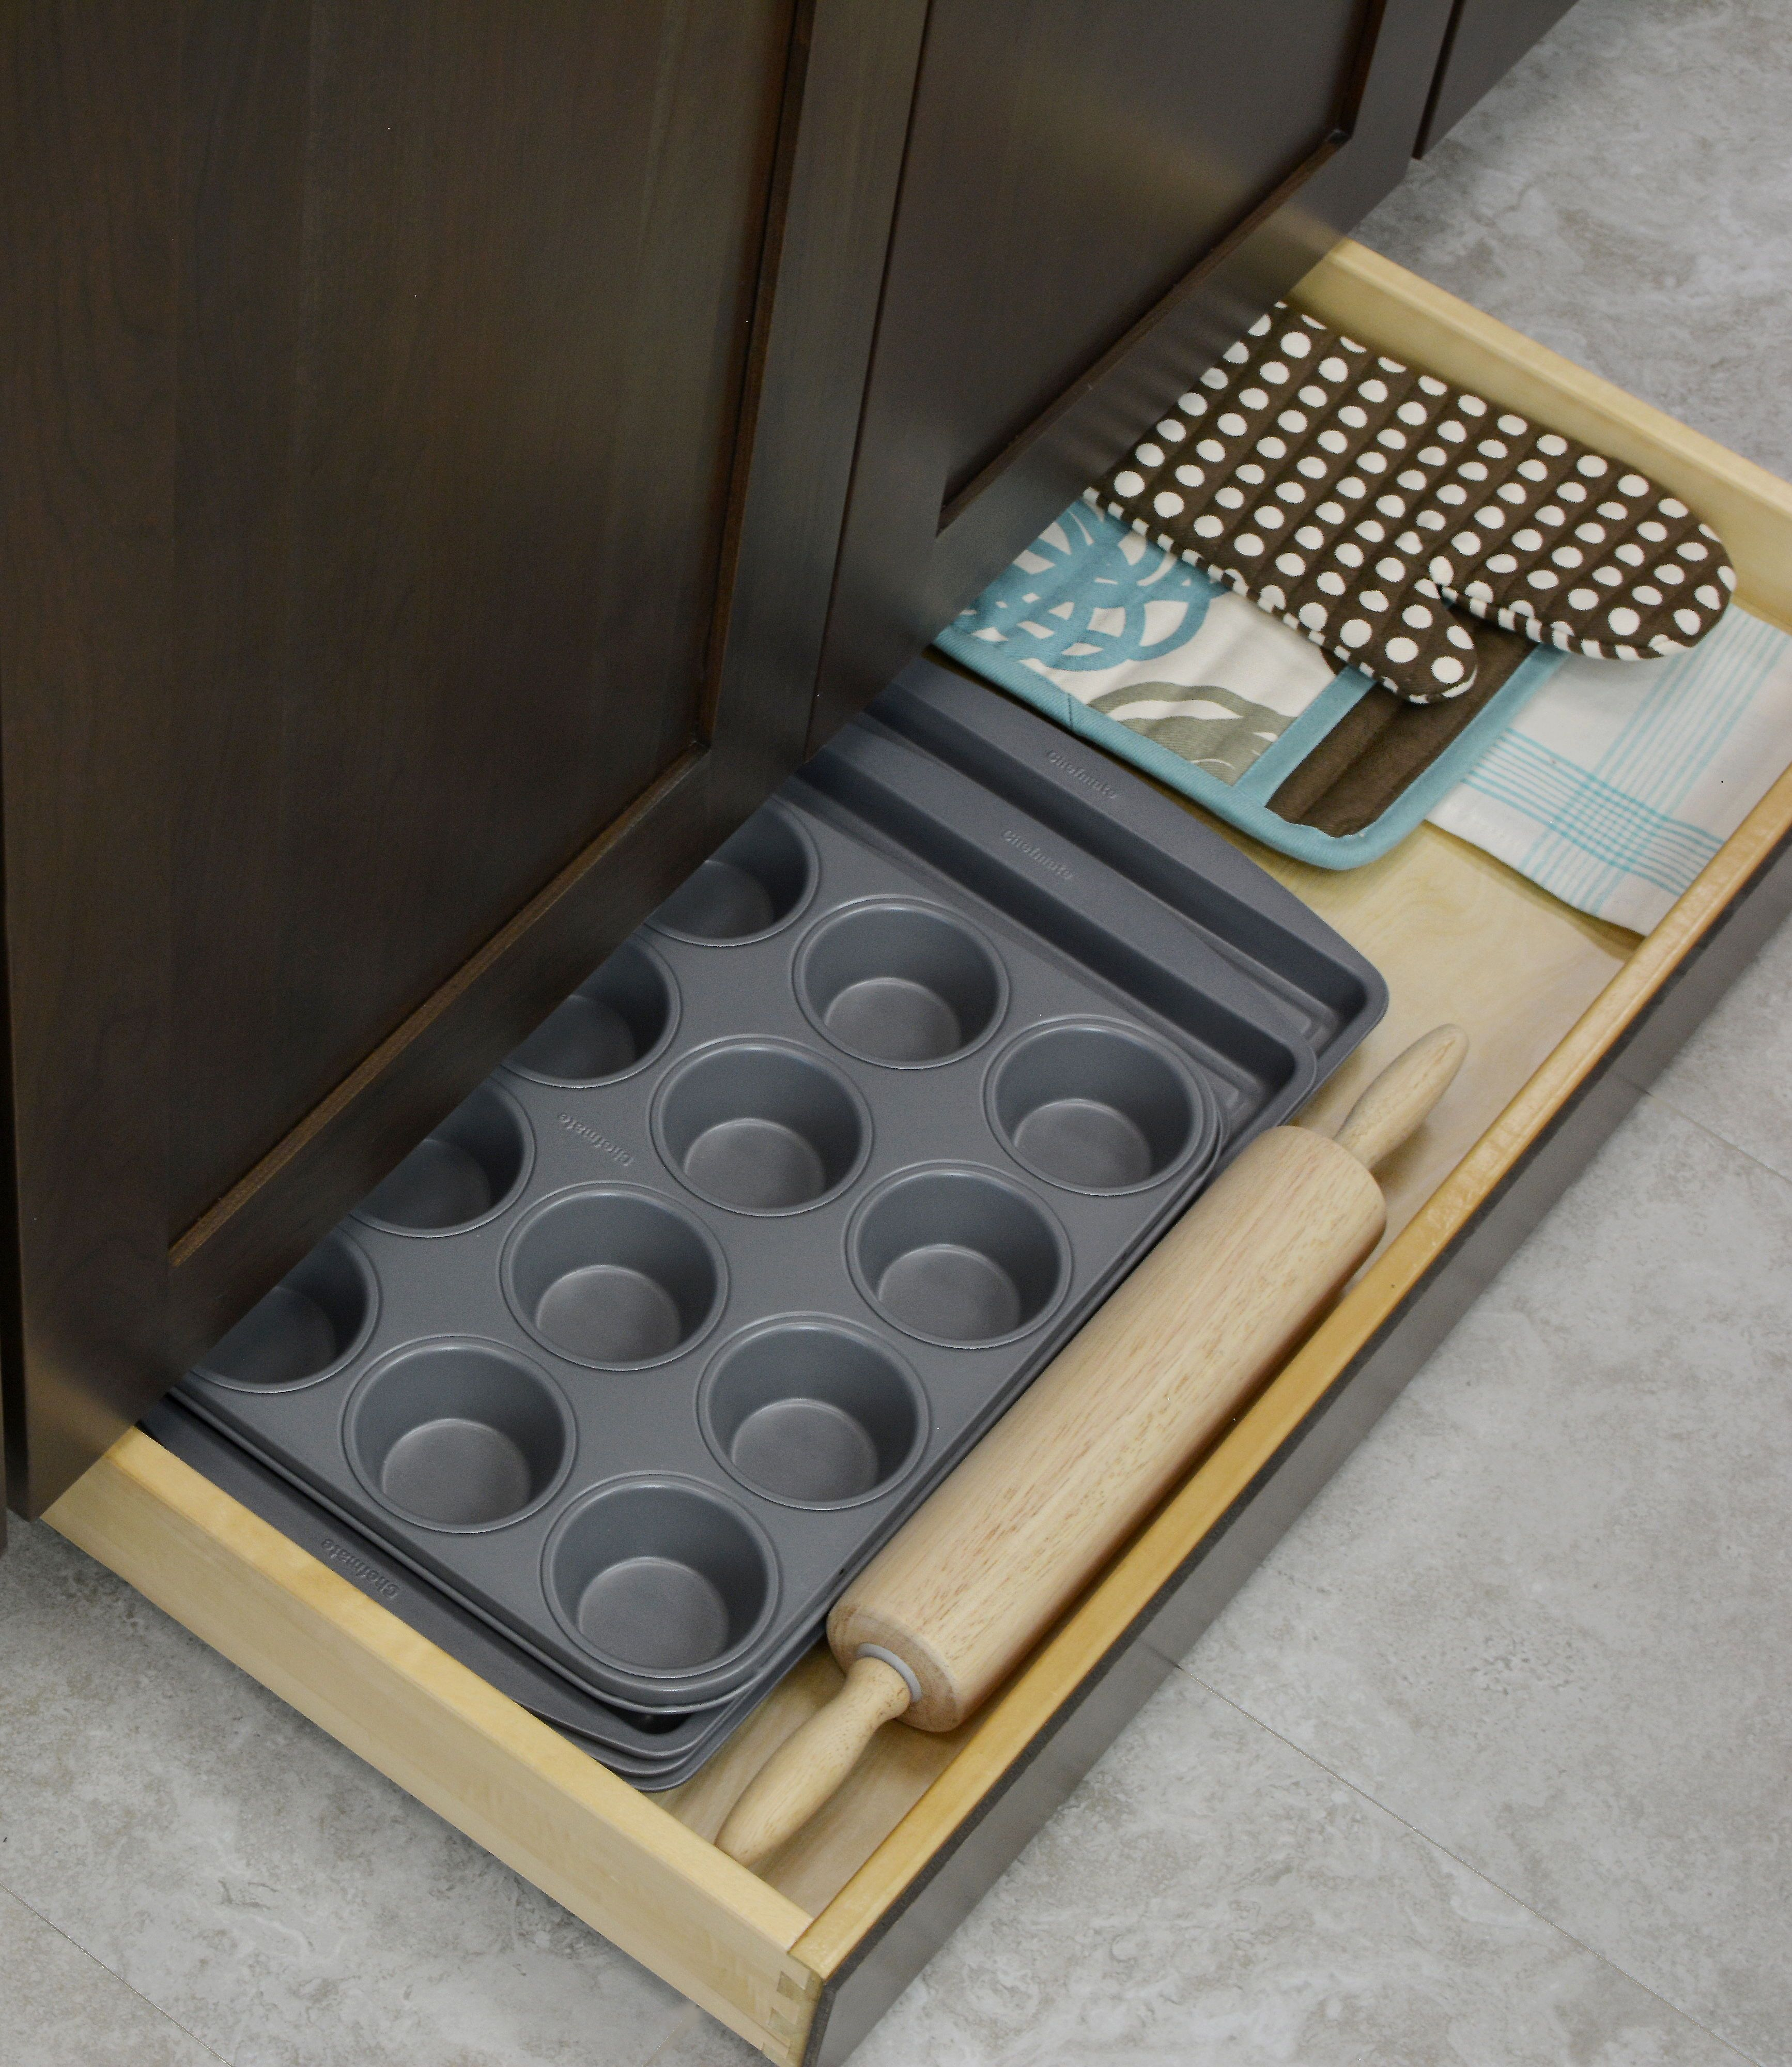 Have you heard of the Toe-Kick drawer from Dura Supreme ...